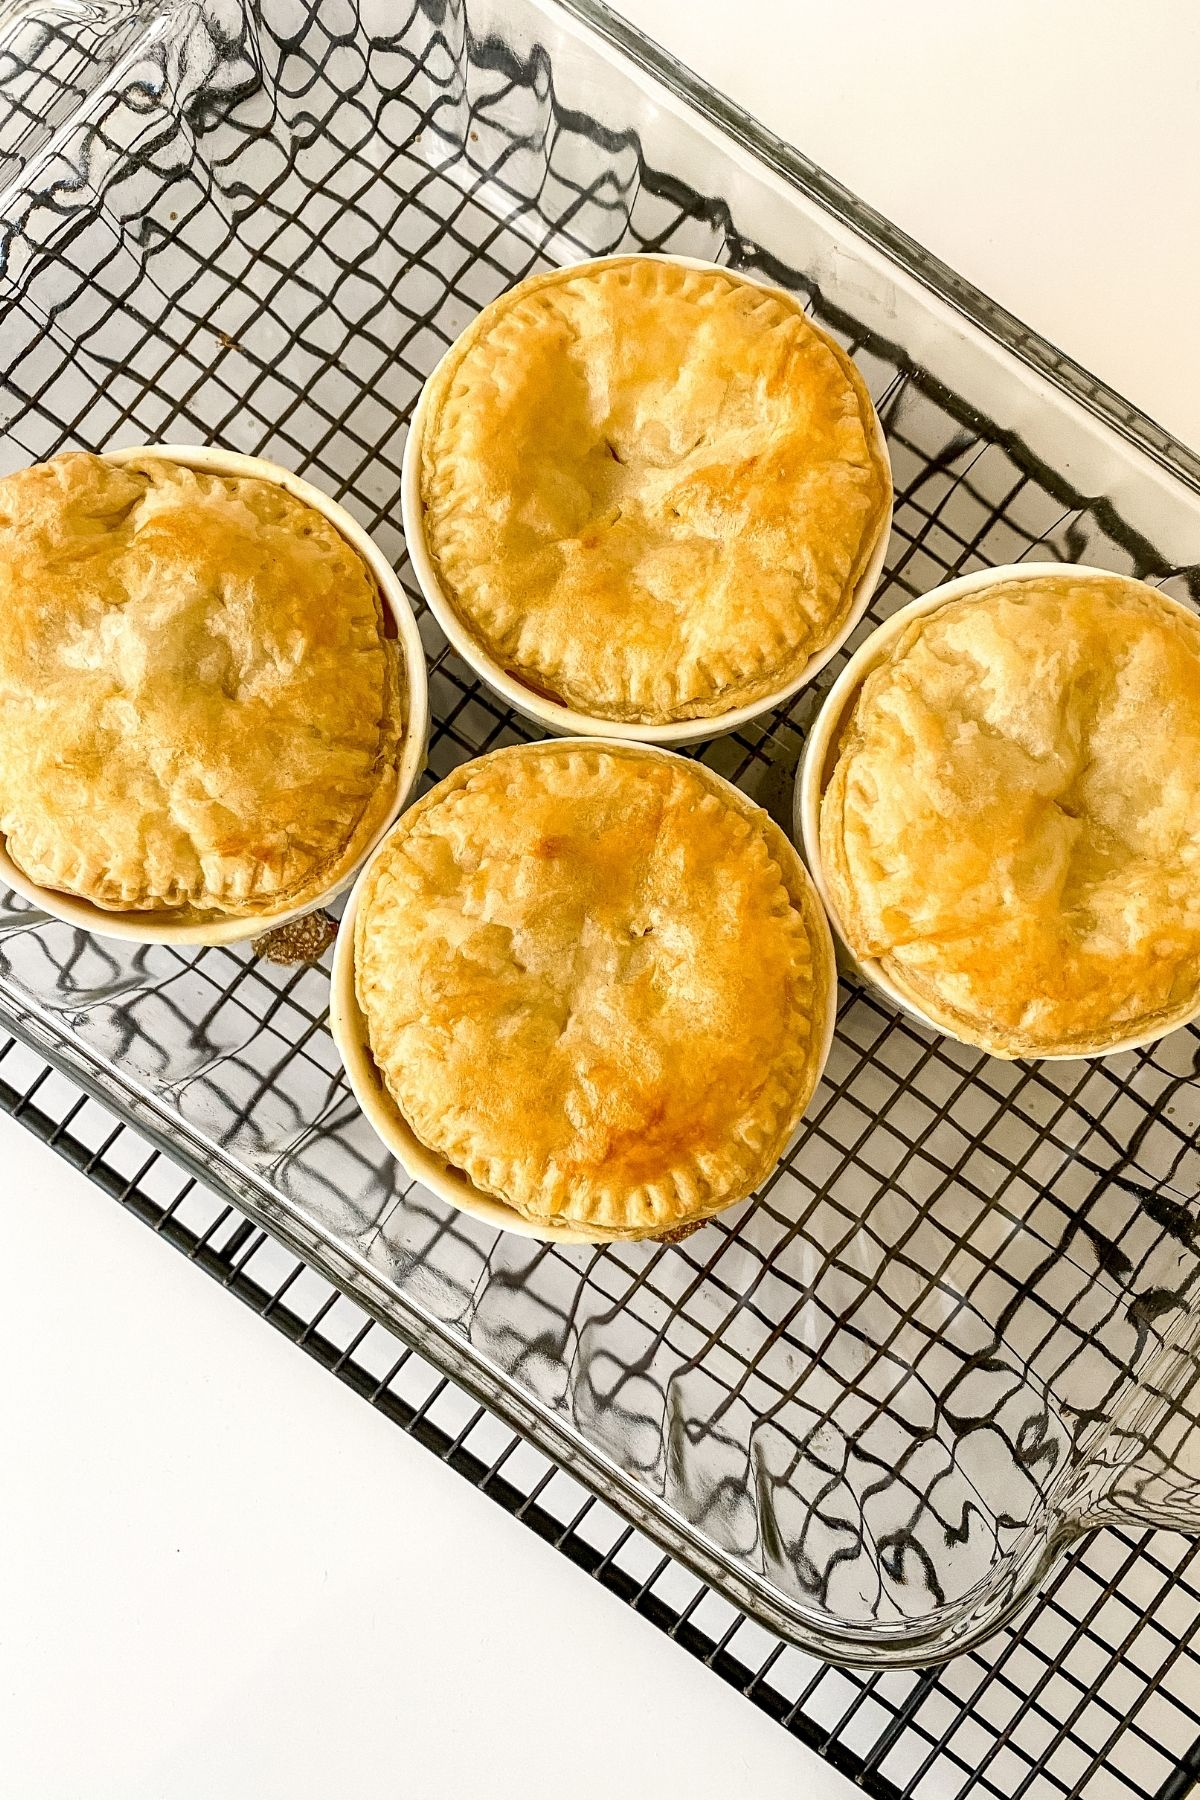 Baked pot pies on wire rack